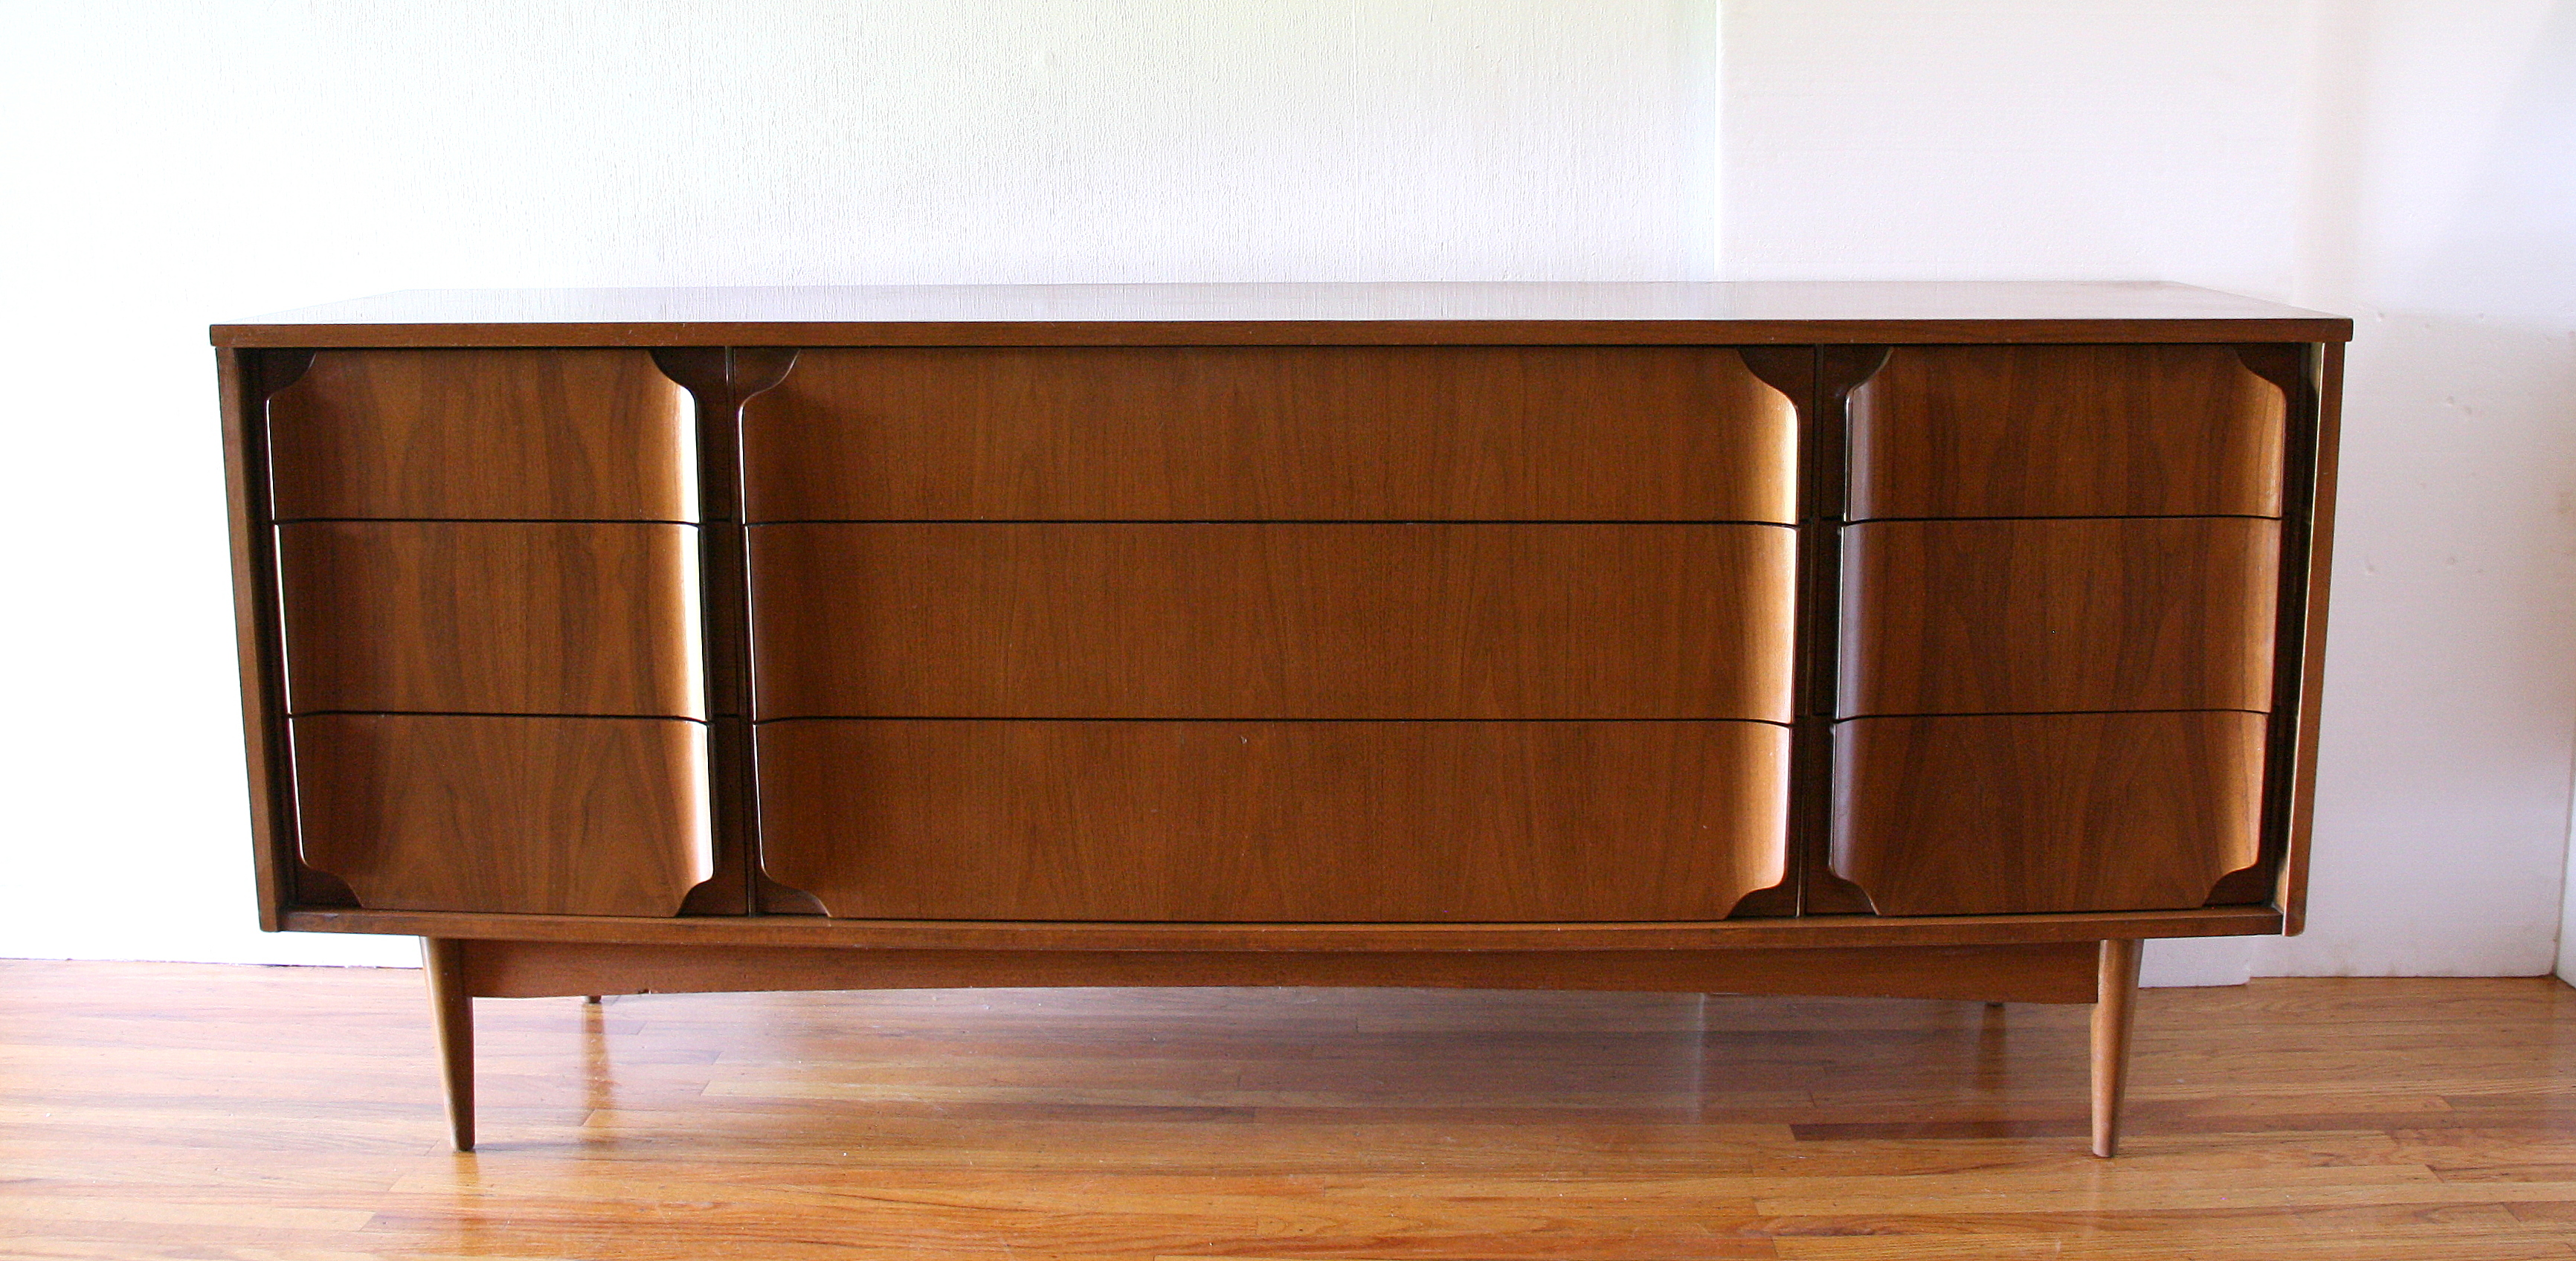 Mcm low dresser with curved pulls 1